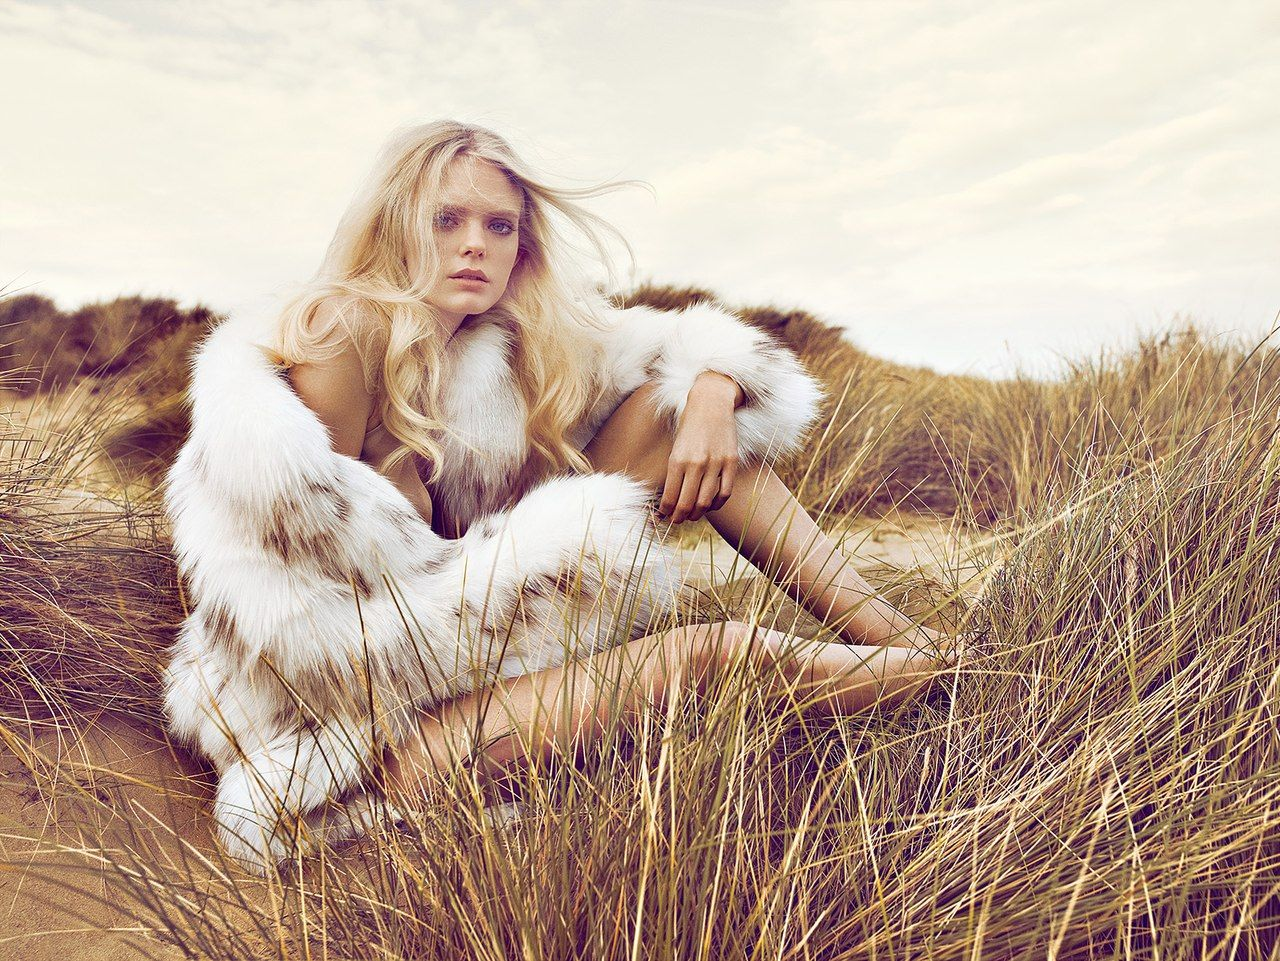 Pin by Claire Rosier on Furs and coats Winter beach